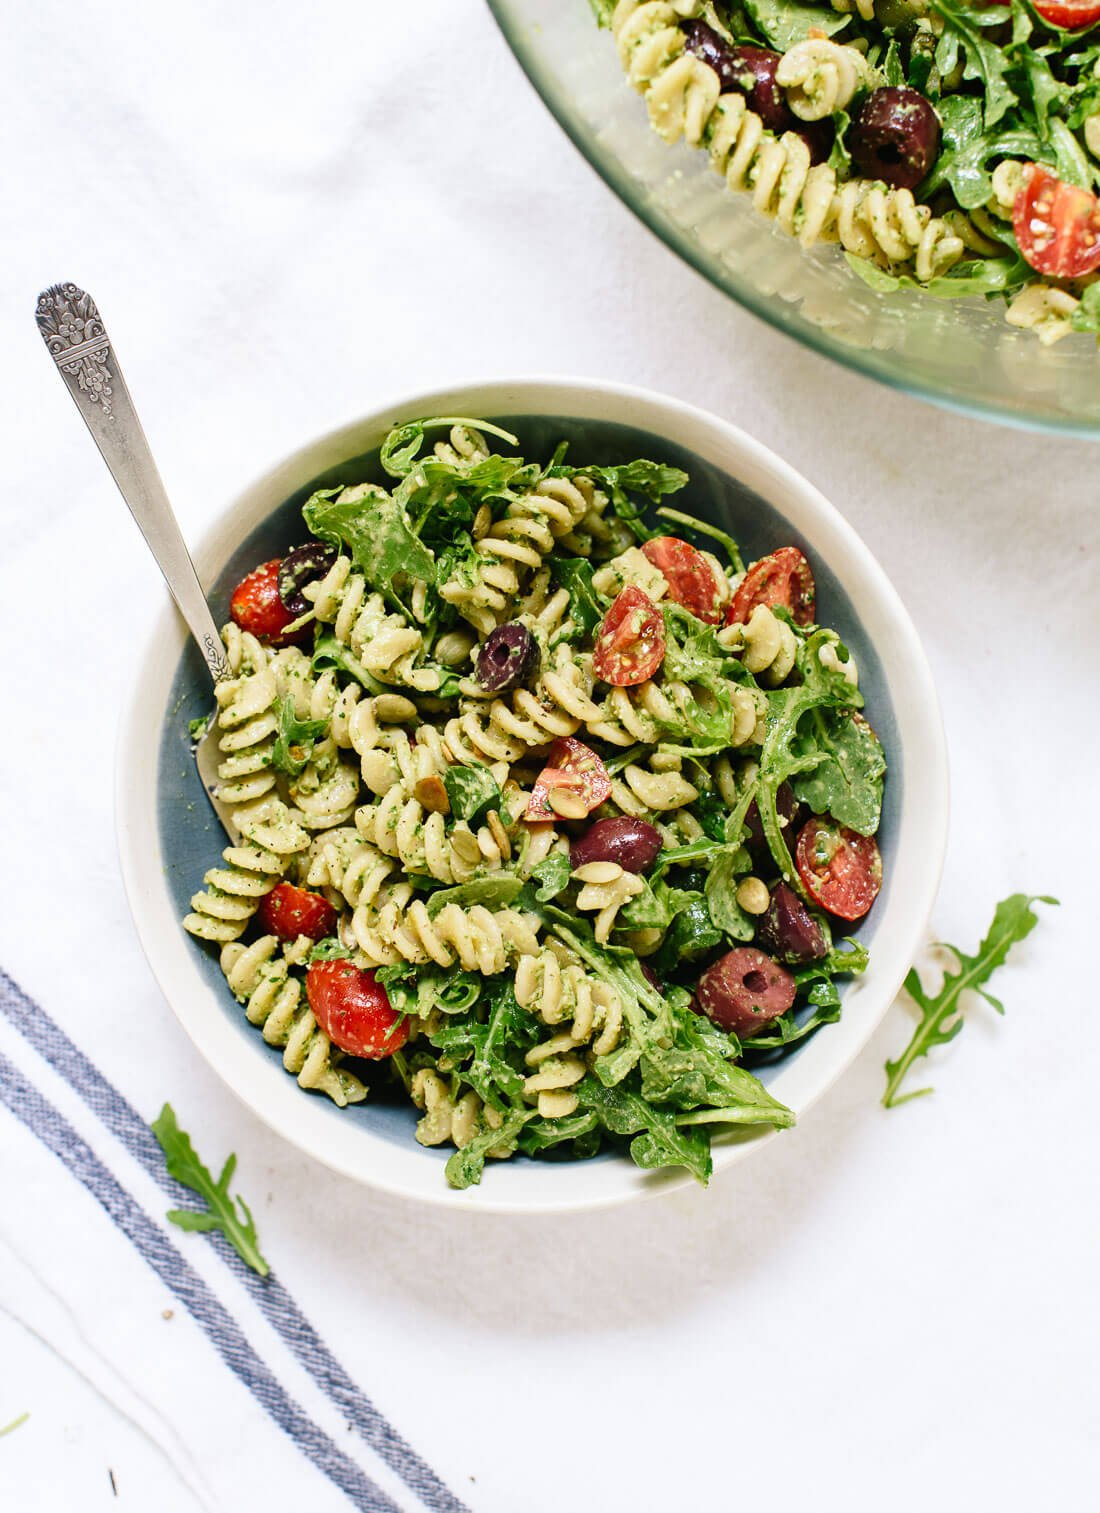 This pesto pasta salad recipe is bursting with fresh flavor! It's light, healthy and easy to make. Perfect for picnics and potlucks! cookieandkate.com